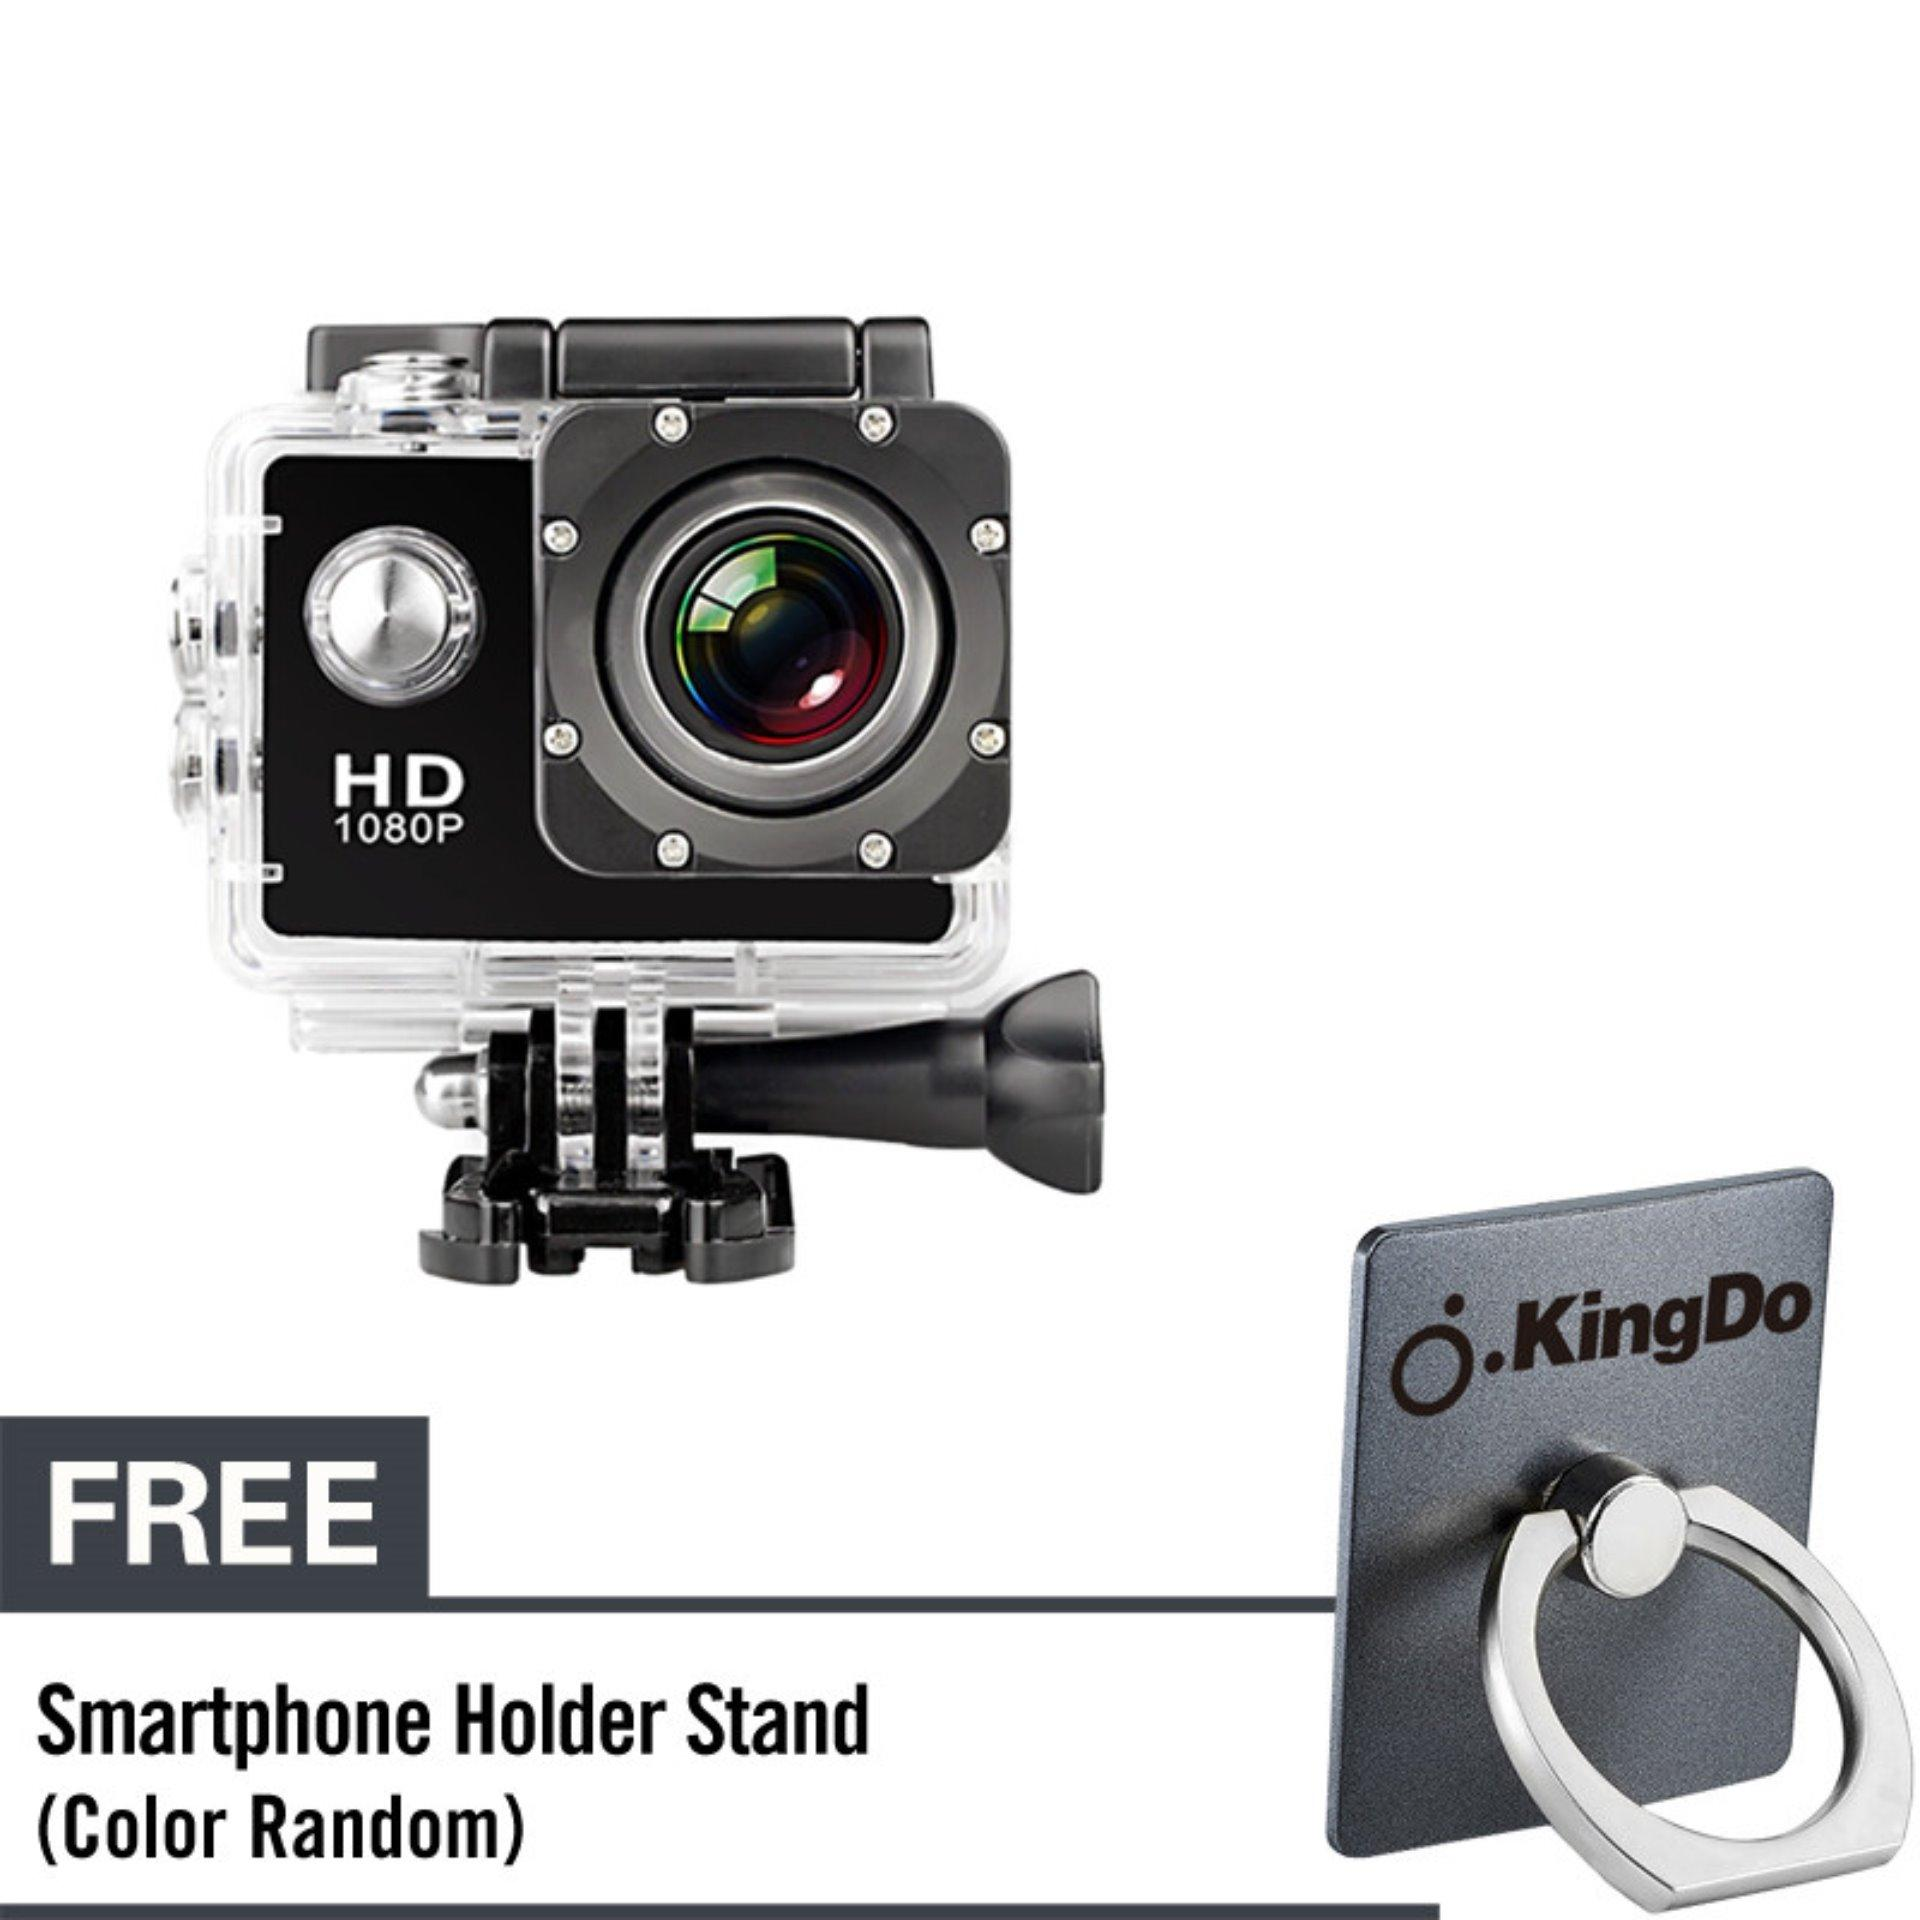 KingDo Waterproof Sports DV WiFi Extreme Sports Cameras Action Camera Full HD 1080P Diving Underwater 30m with Free Black Holder Stand for Smartphone Tablet PC product preview, discount at cheapest price